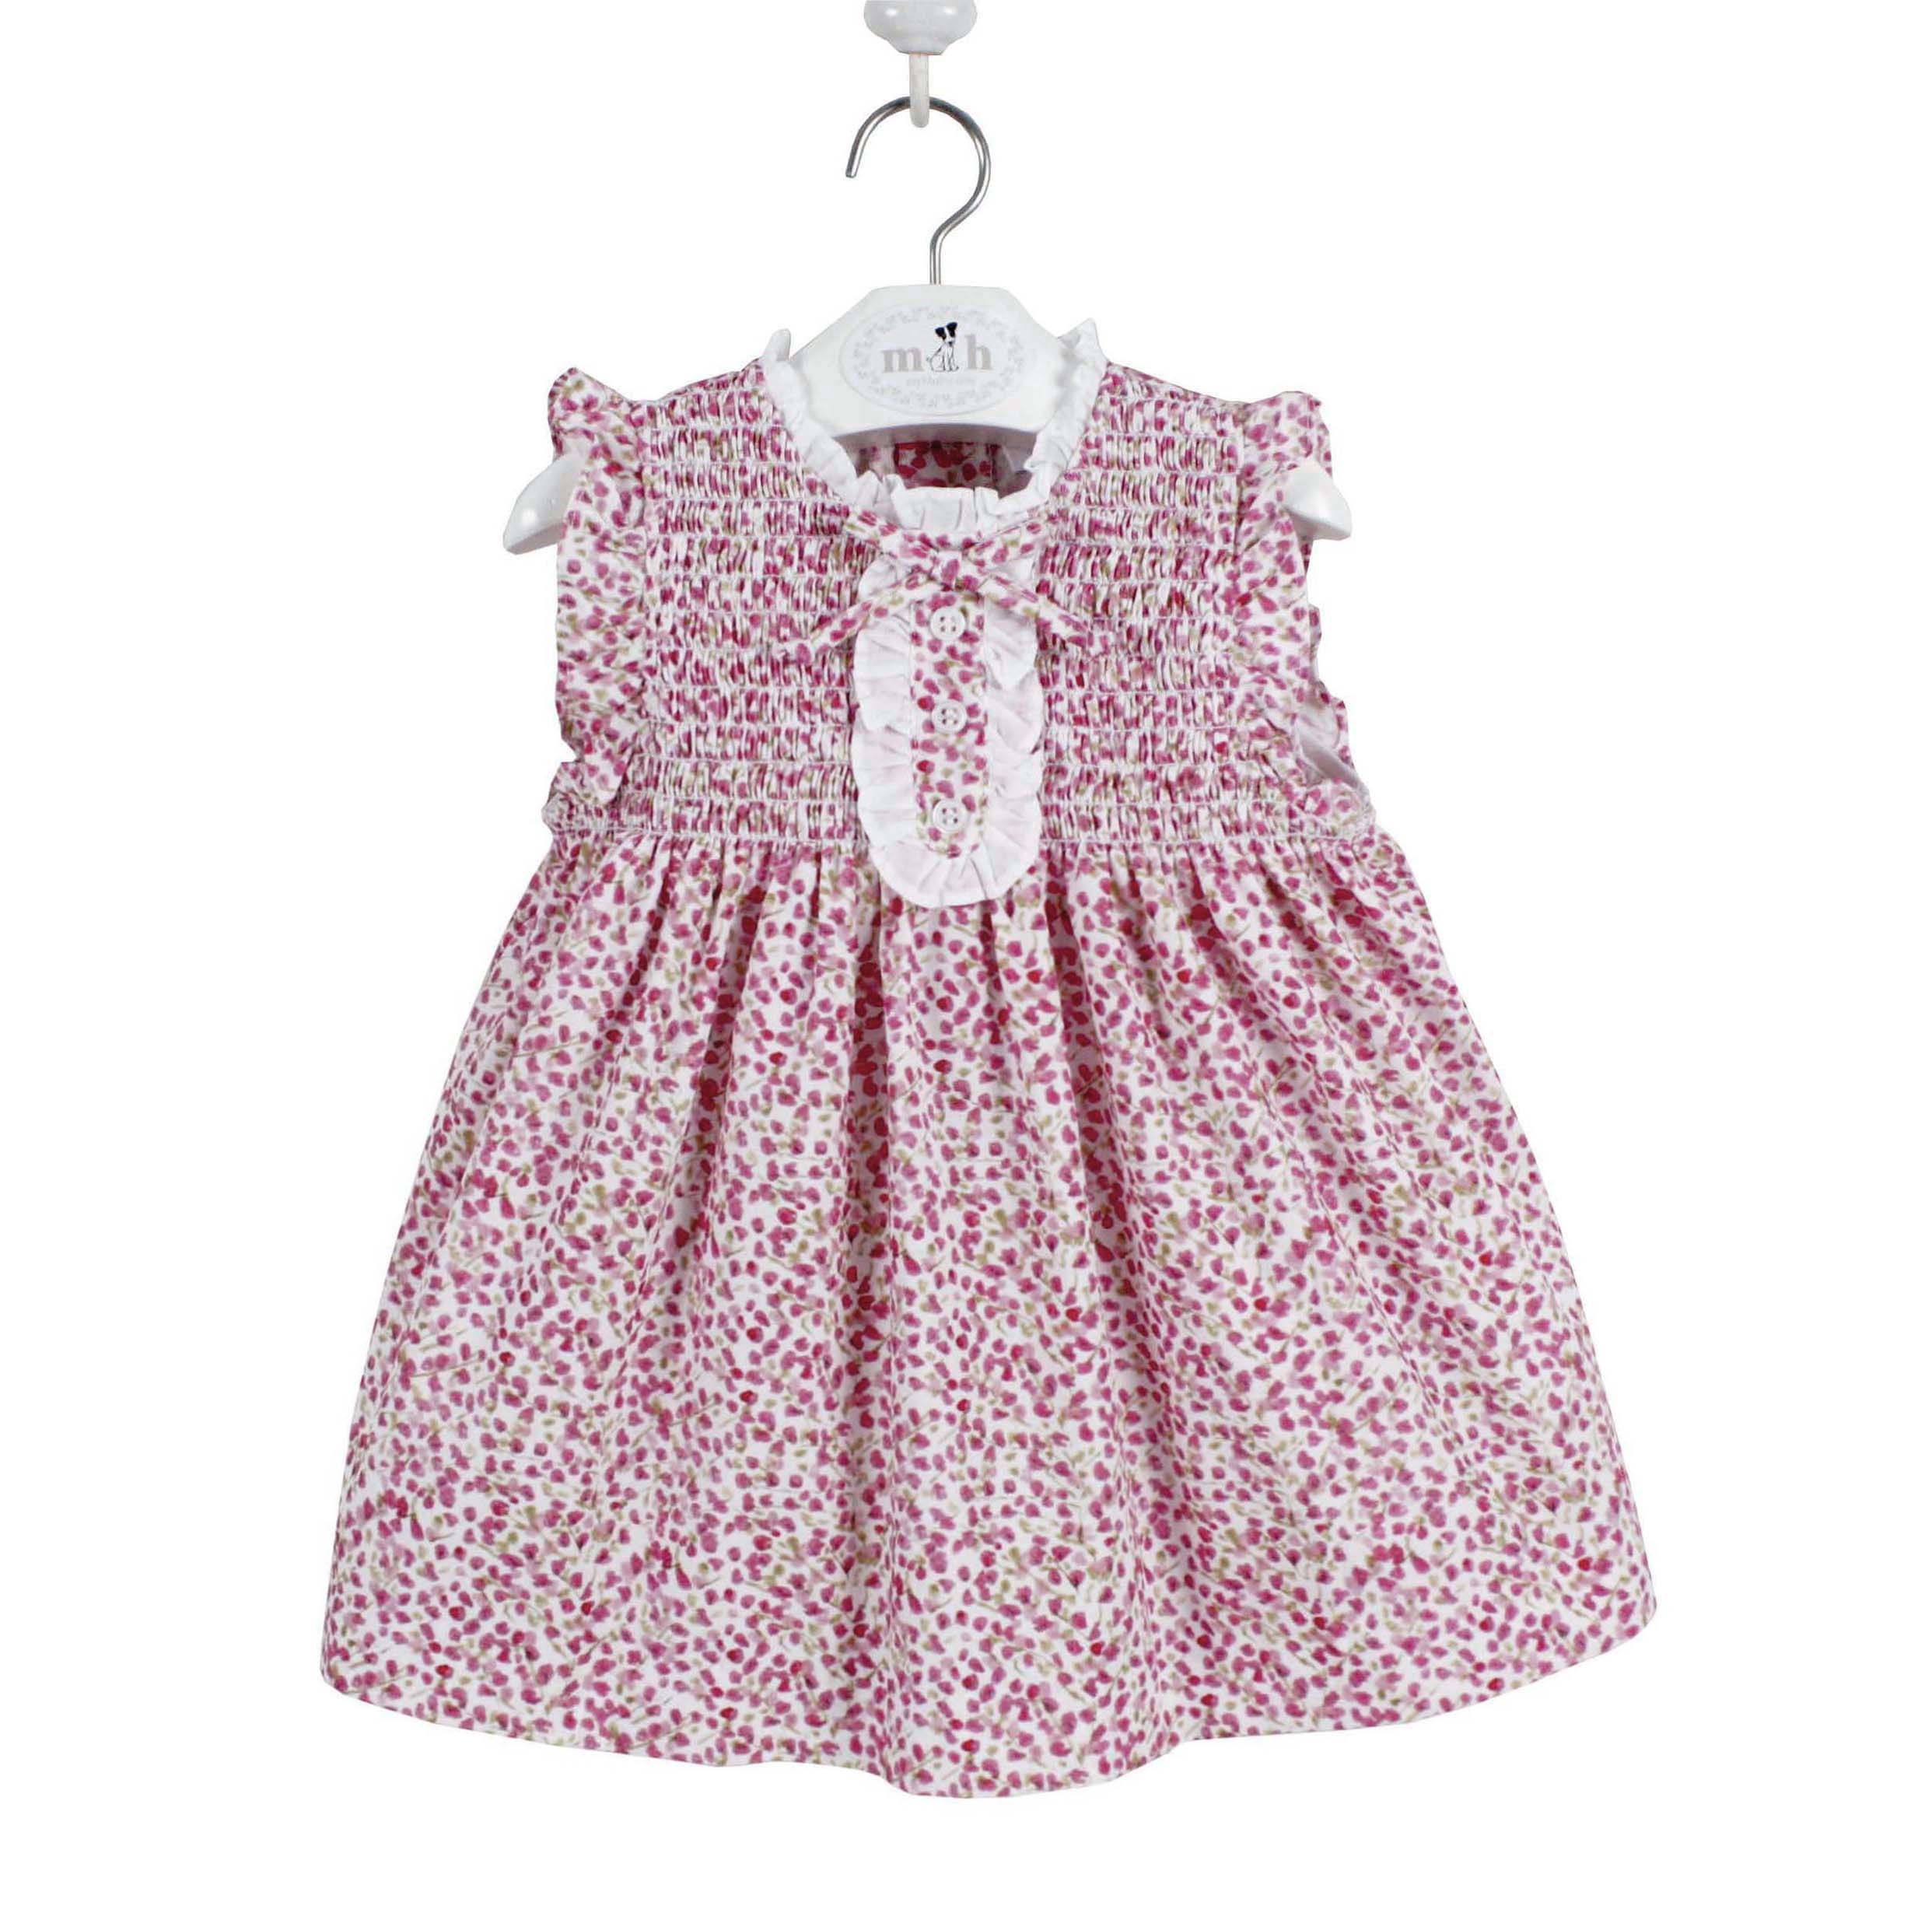 ea64541d0b63 Sleeveless girl dress pink and green branches pattern. Irene model